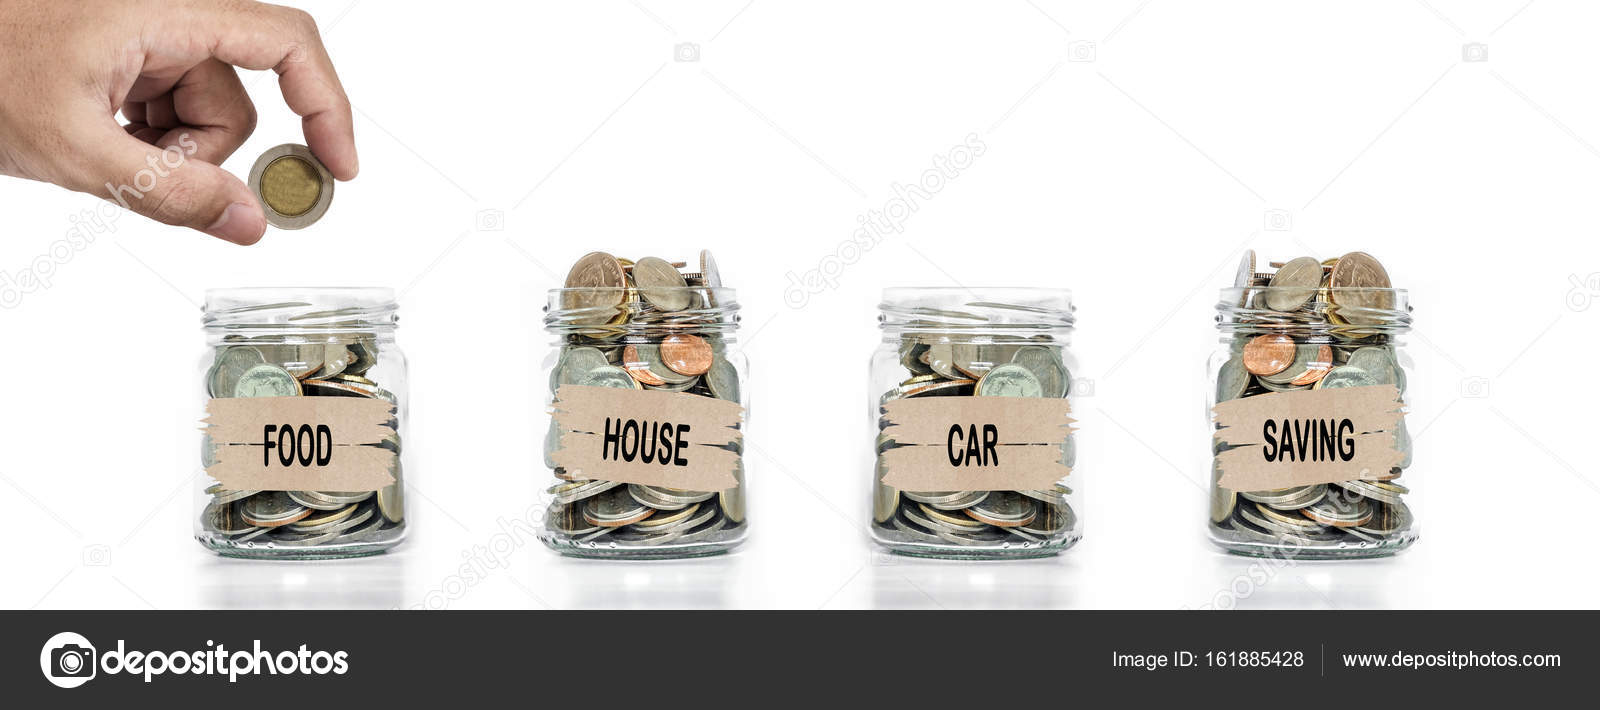 Hand putting coin in glass jar. Allocate money for foods, house, car ...